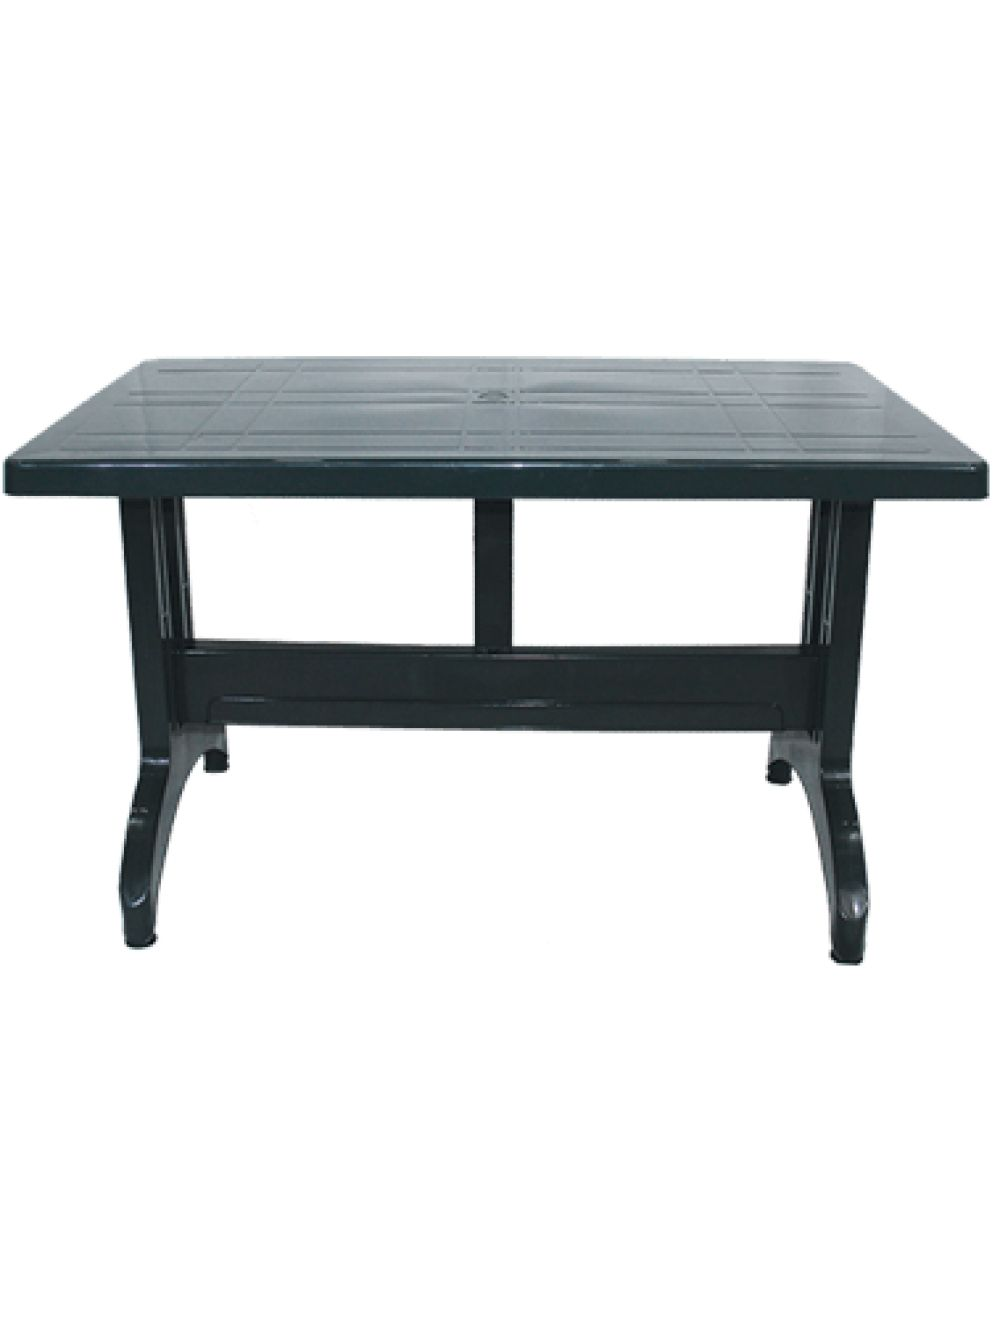 37+ Plastic dining table set in nepal Ideas